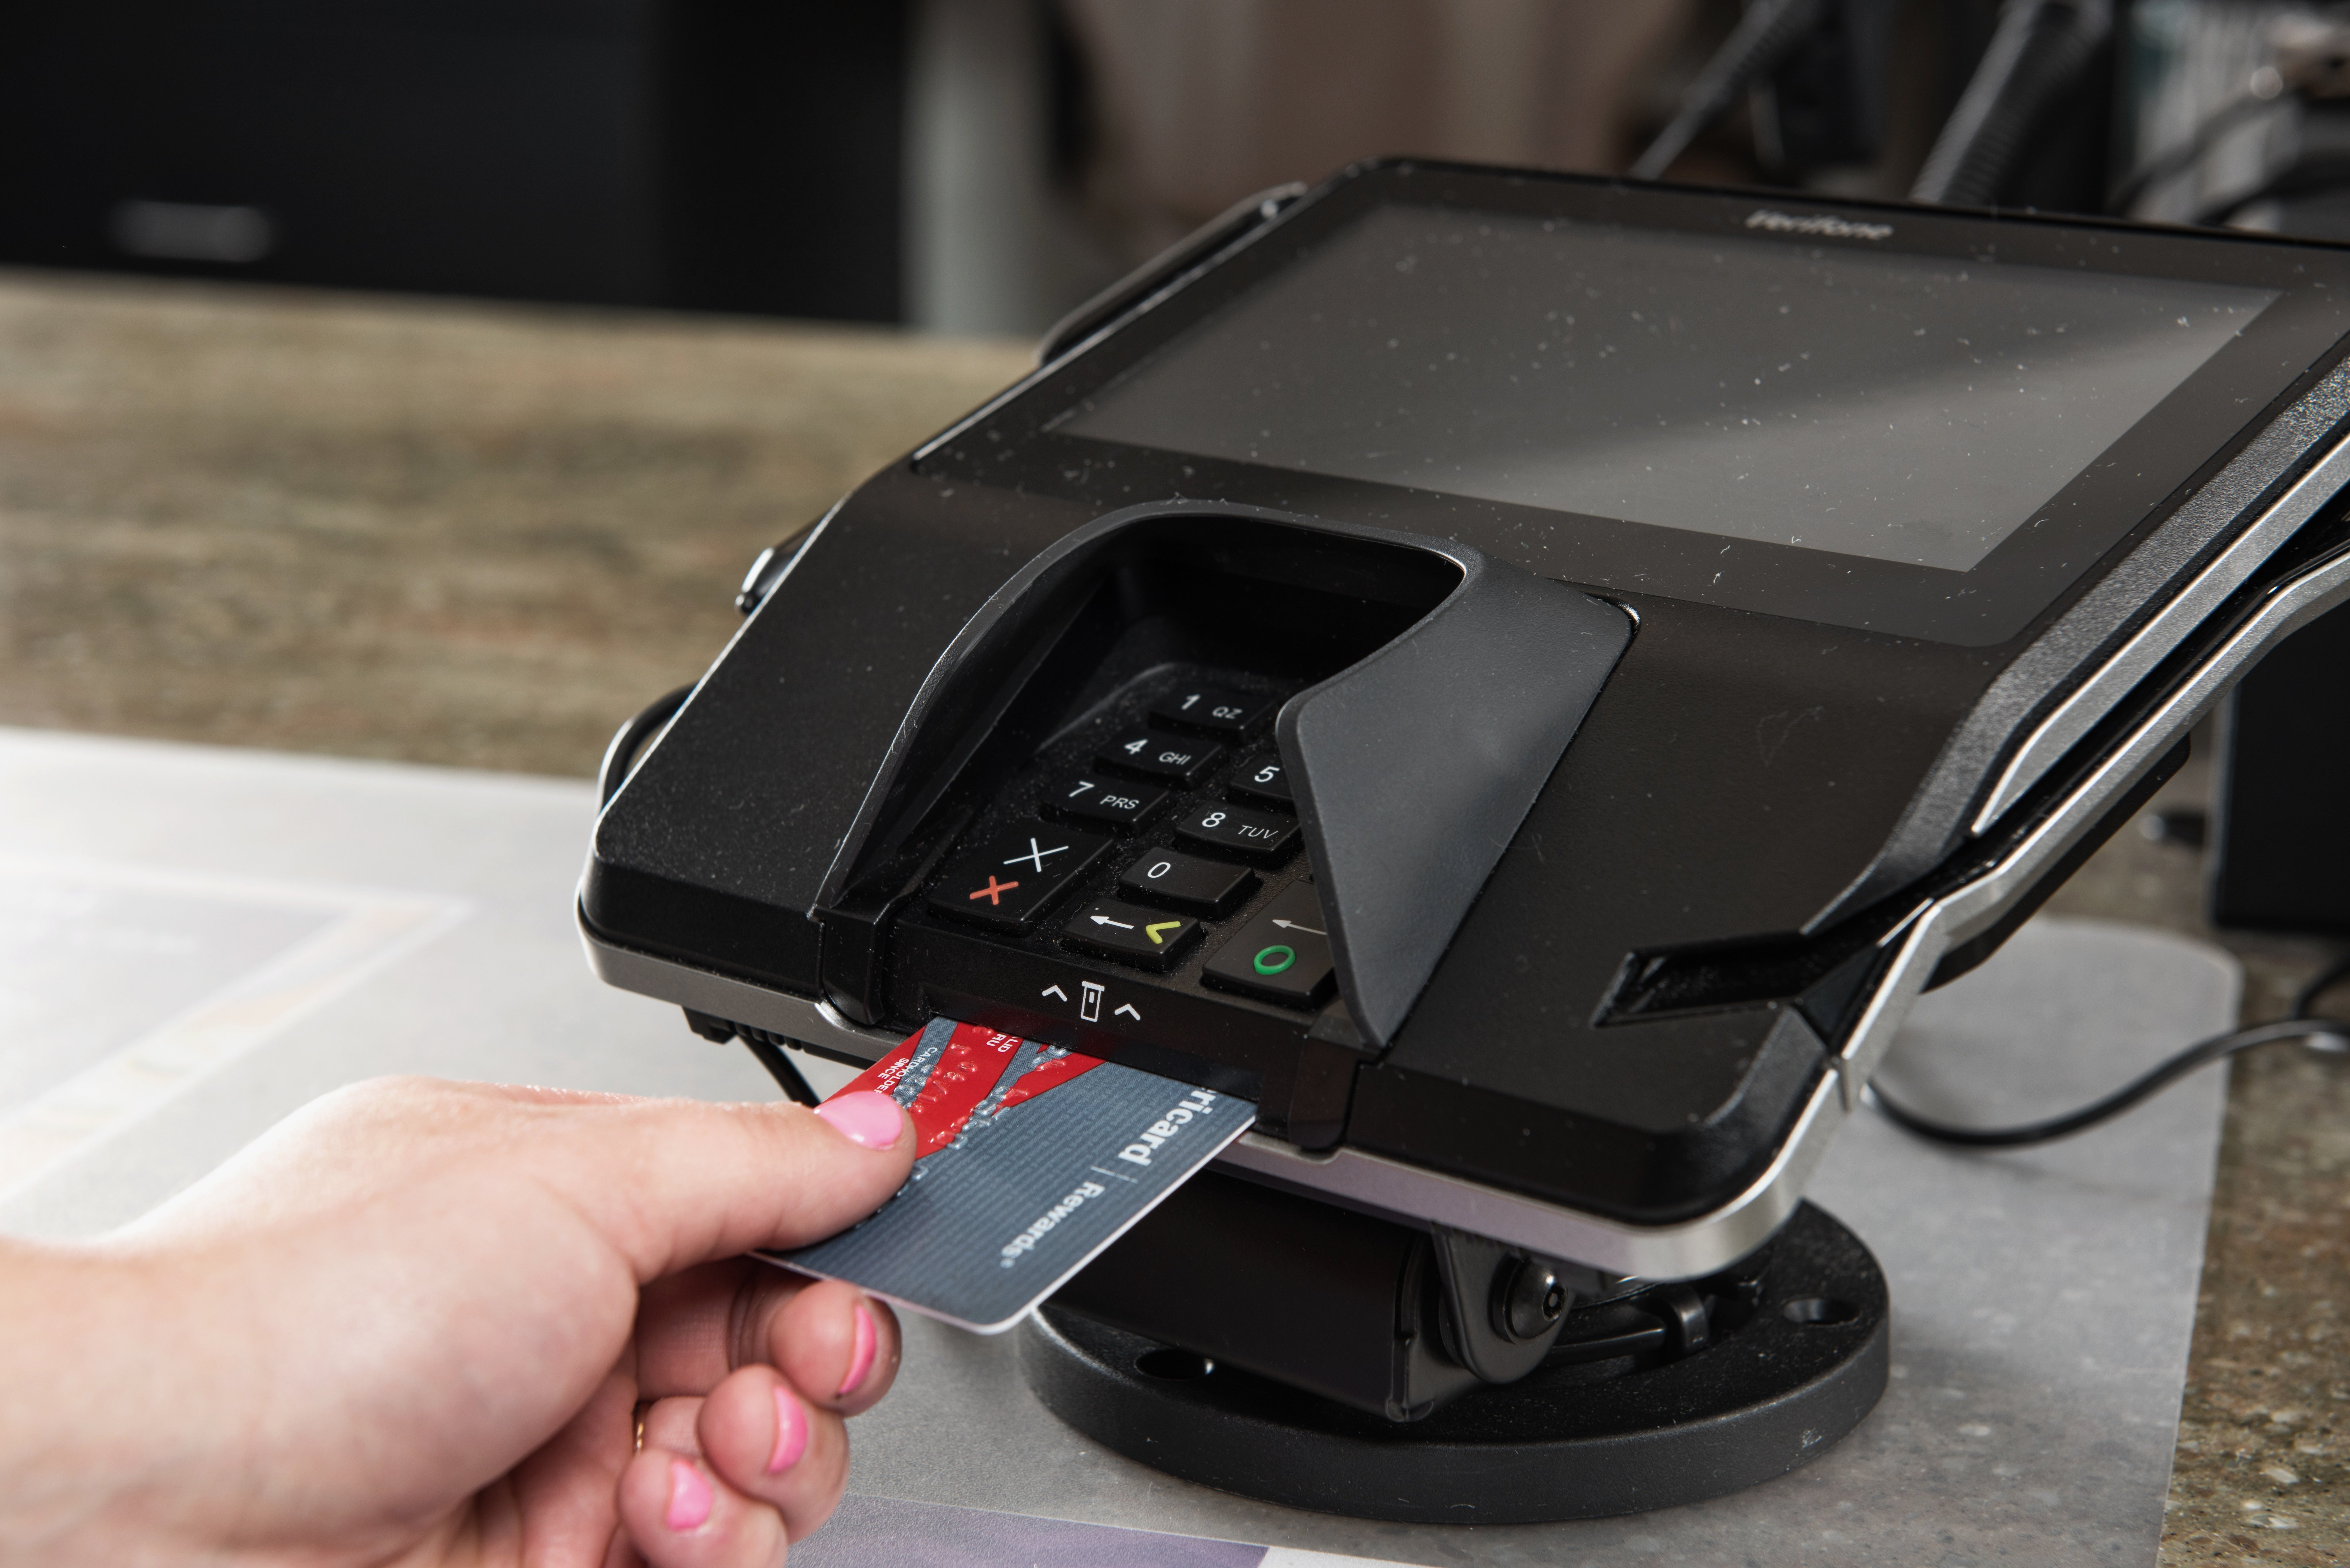 Pharmacy patient using their EMV card in an EMV terminal for secure credit card processing.